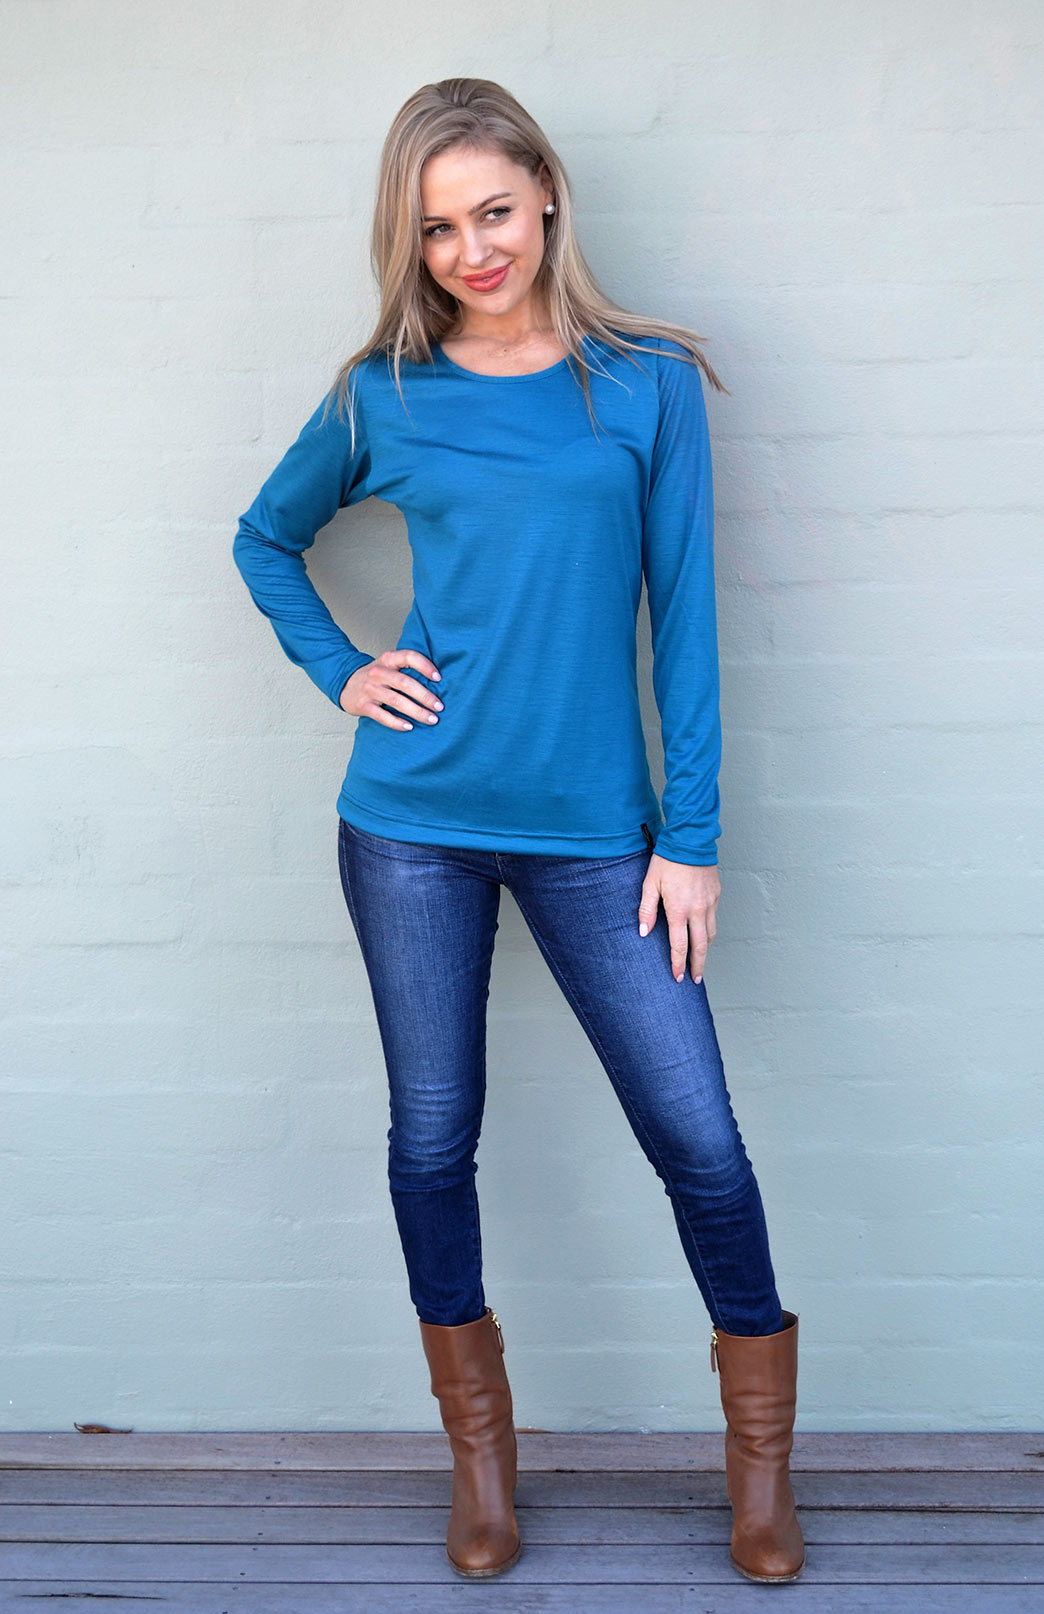 Round Neck Top - Plain - Women's Dark Teal Long Sleeved Merino Wool Thermal Top - Smitten Merino Tasmania Australia